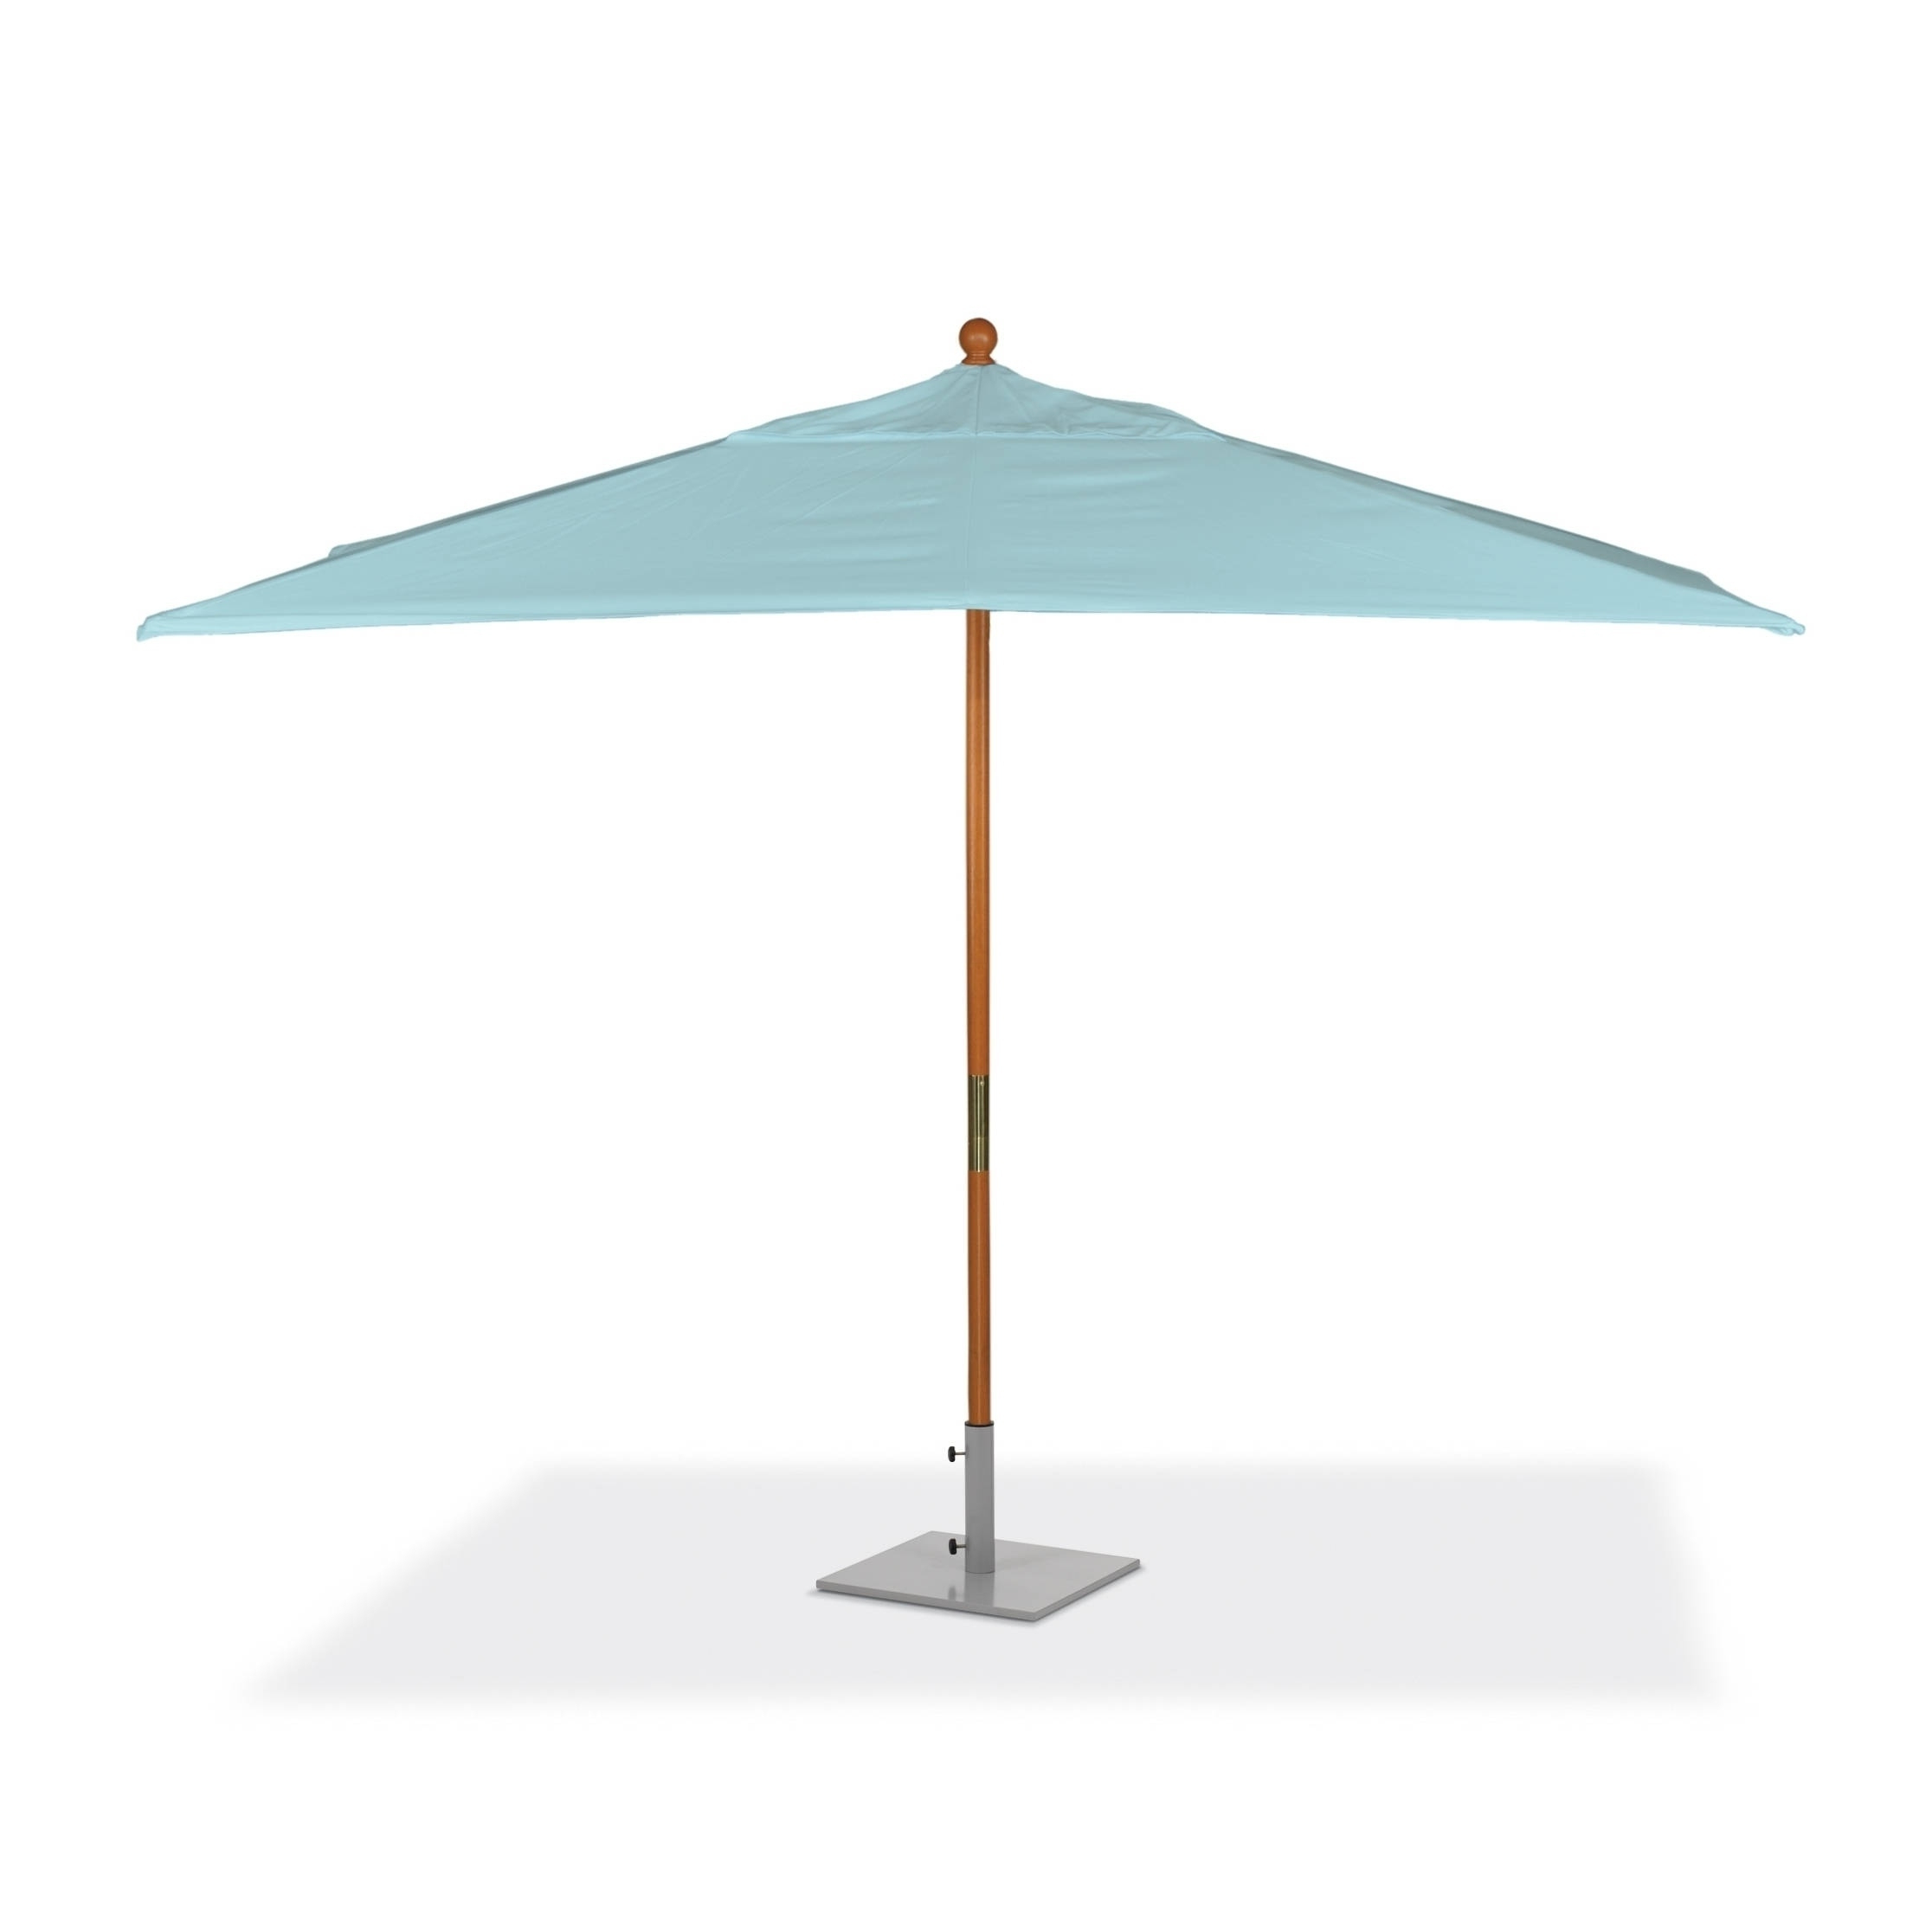 Solid Rectangular Market Umbrellas Throughout Most Up To Date Oxford Garden 10 Feet Rectangular Mineral Blue Sunbrella Fabric Shade  Market Umbrella With Solid Tropical Hardwood Frame (View 14 of 20)